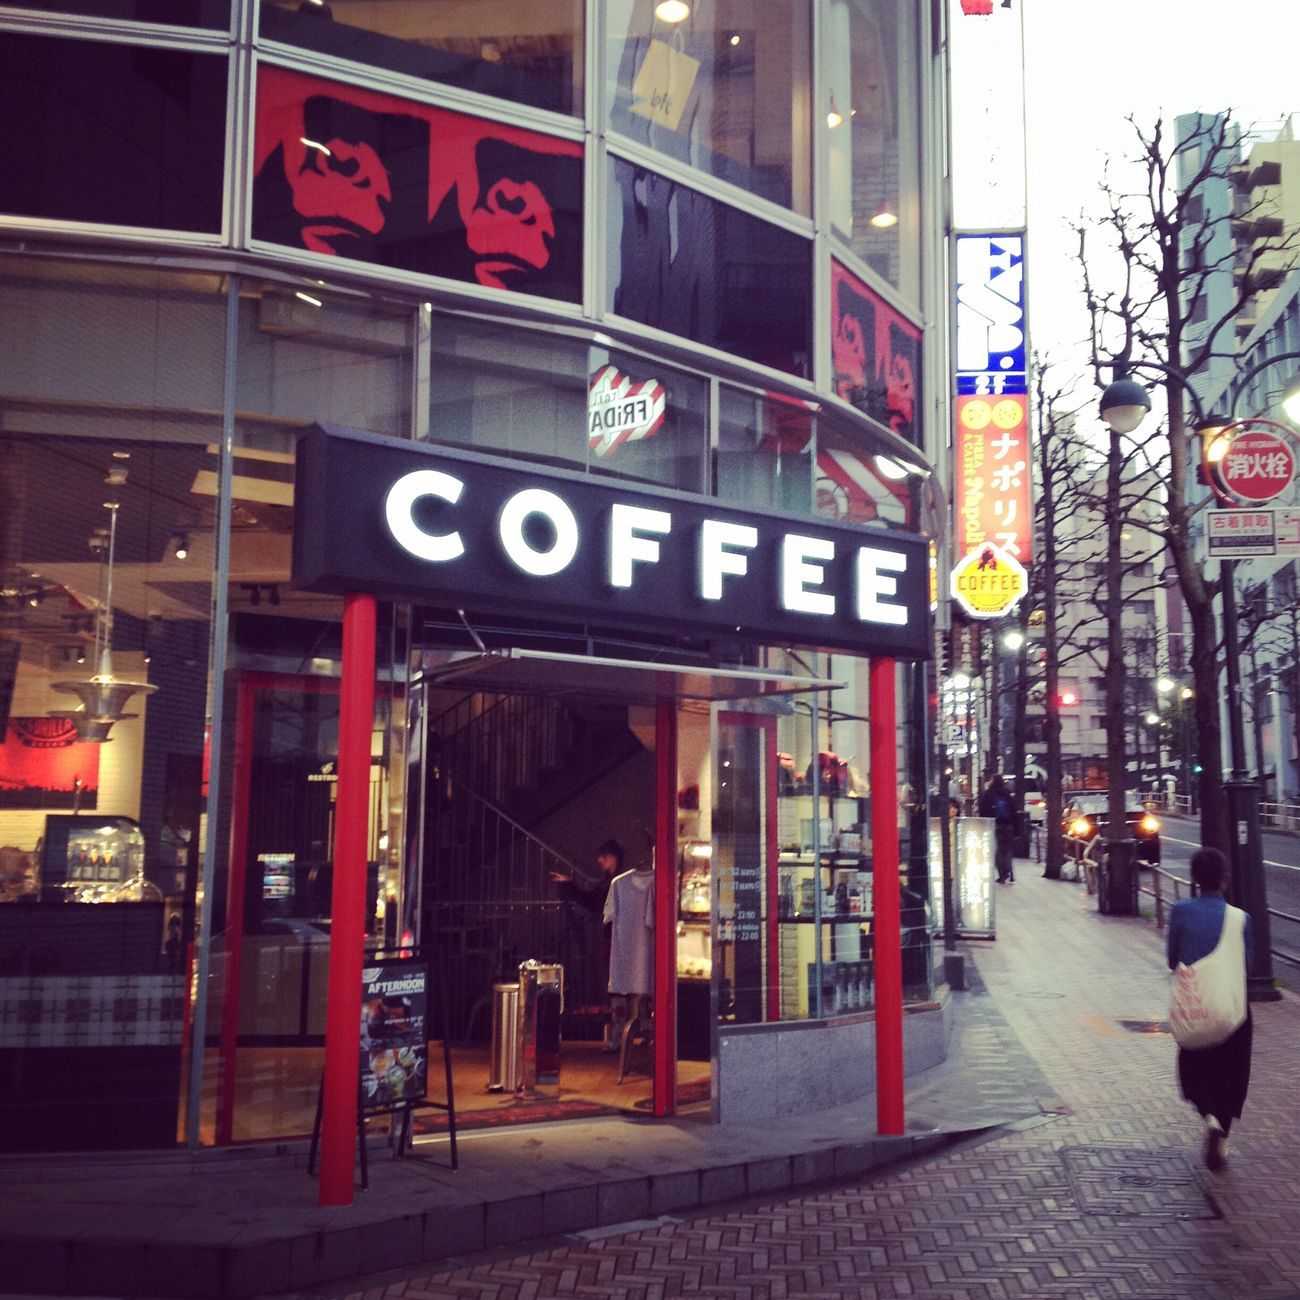 City City Life City Street Coffee Nocoffeenolife Nocoffee Day Close-up Japanese  Shibuya Japan Gorilla Gorillacoffee New York City Brooklyn ゴリラ ゴリラコーヒー 渋谷